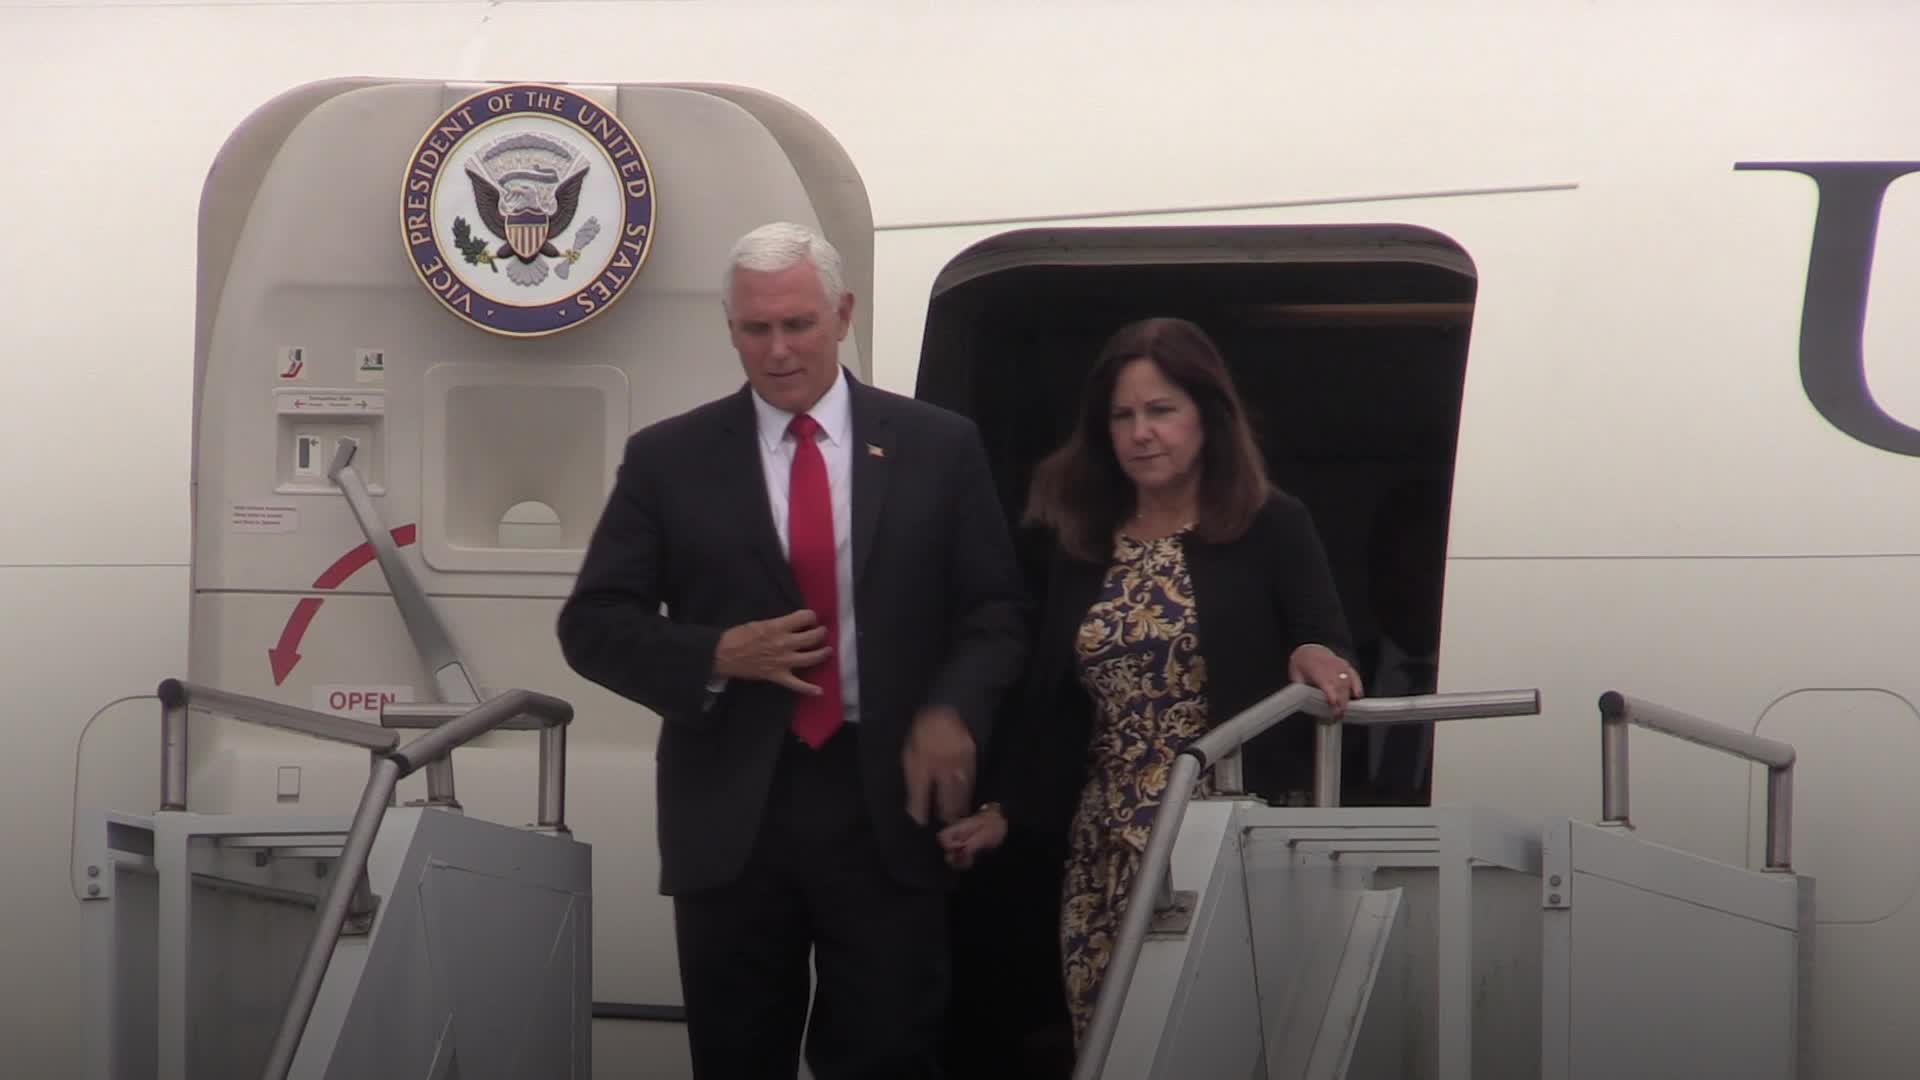 Irish Media Dumps On Mike Pence: He Came As A Guest And 'Sh*t On The New Carpet'